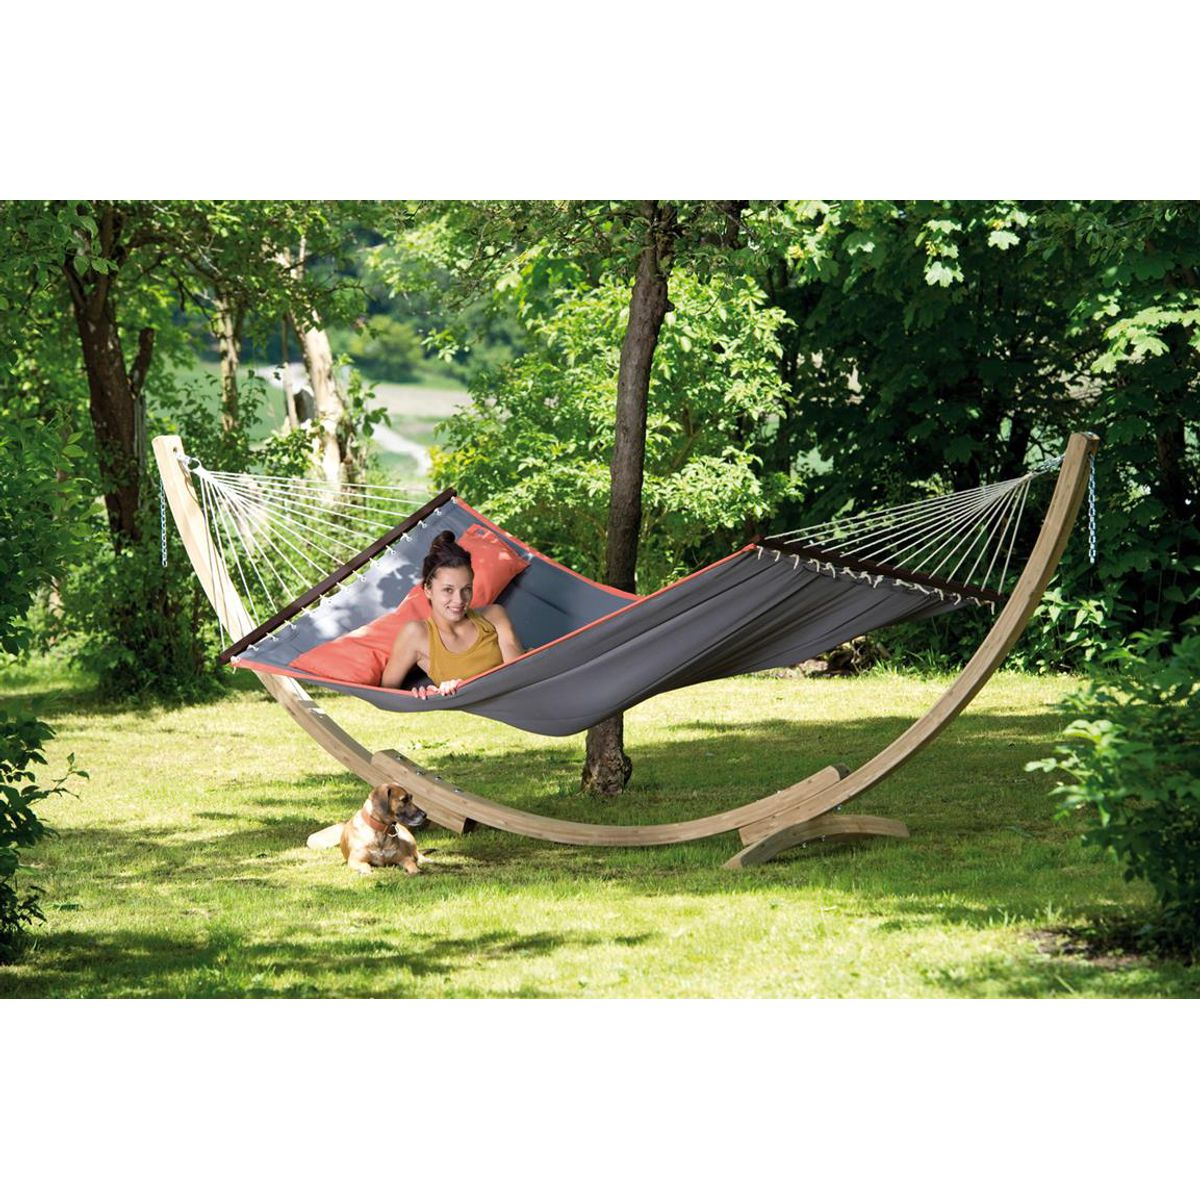 Amazonas Apollo Wooden Hammock Stand - Ruby's Garden Boutique